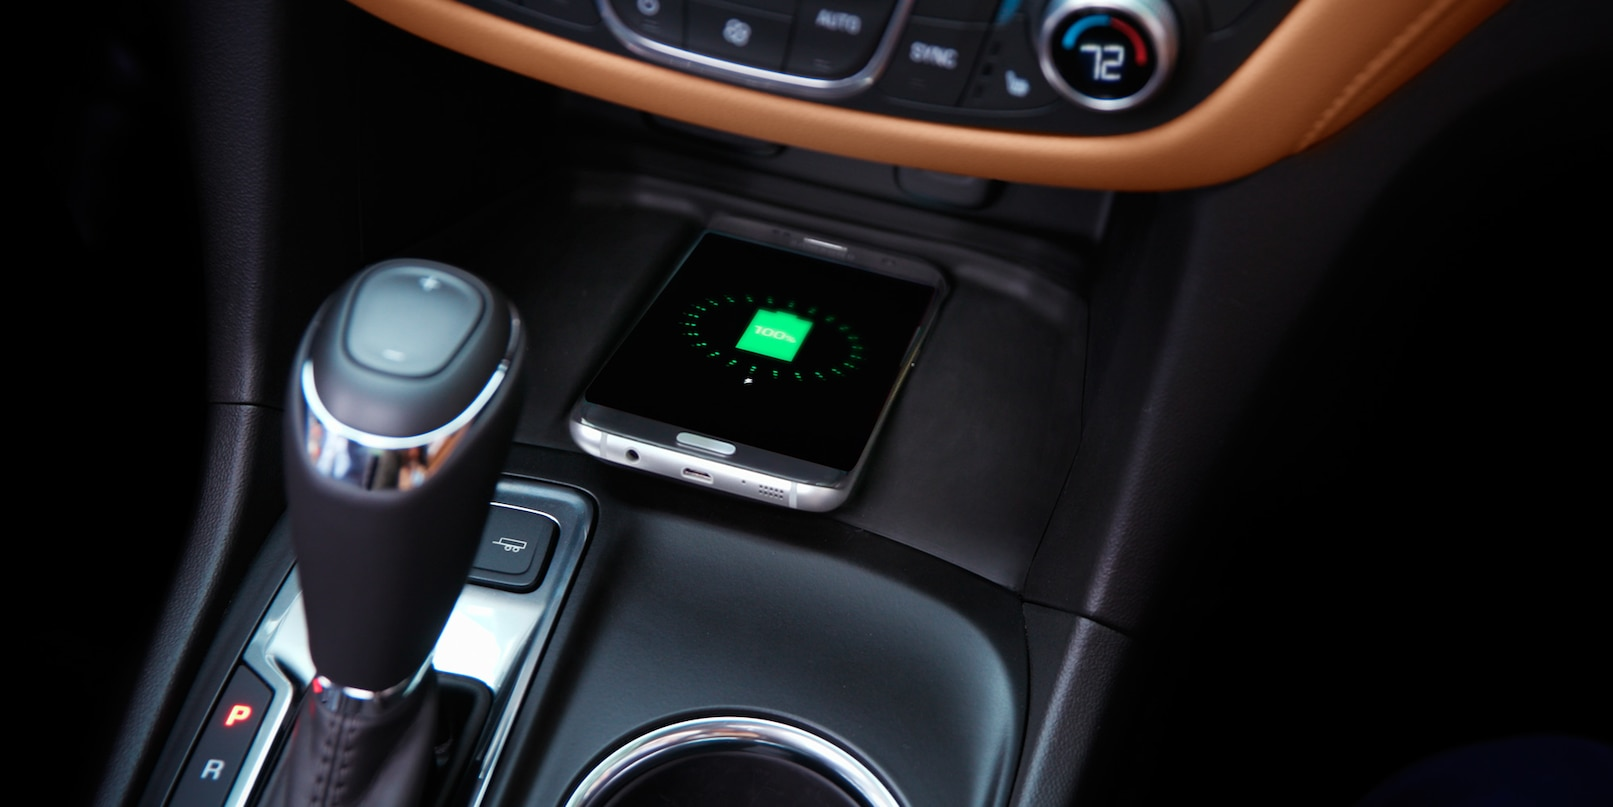 Wireless Charging in the 2019 Equinox